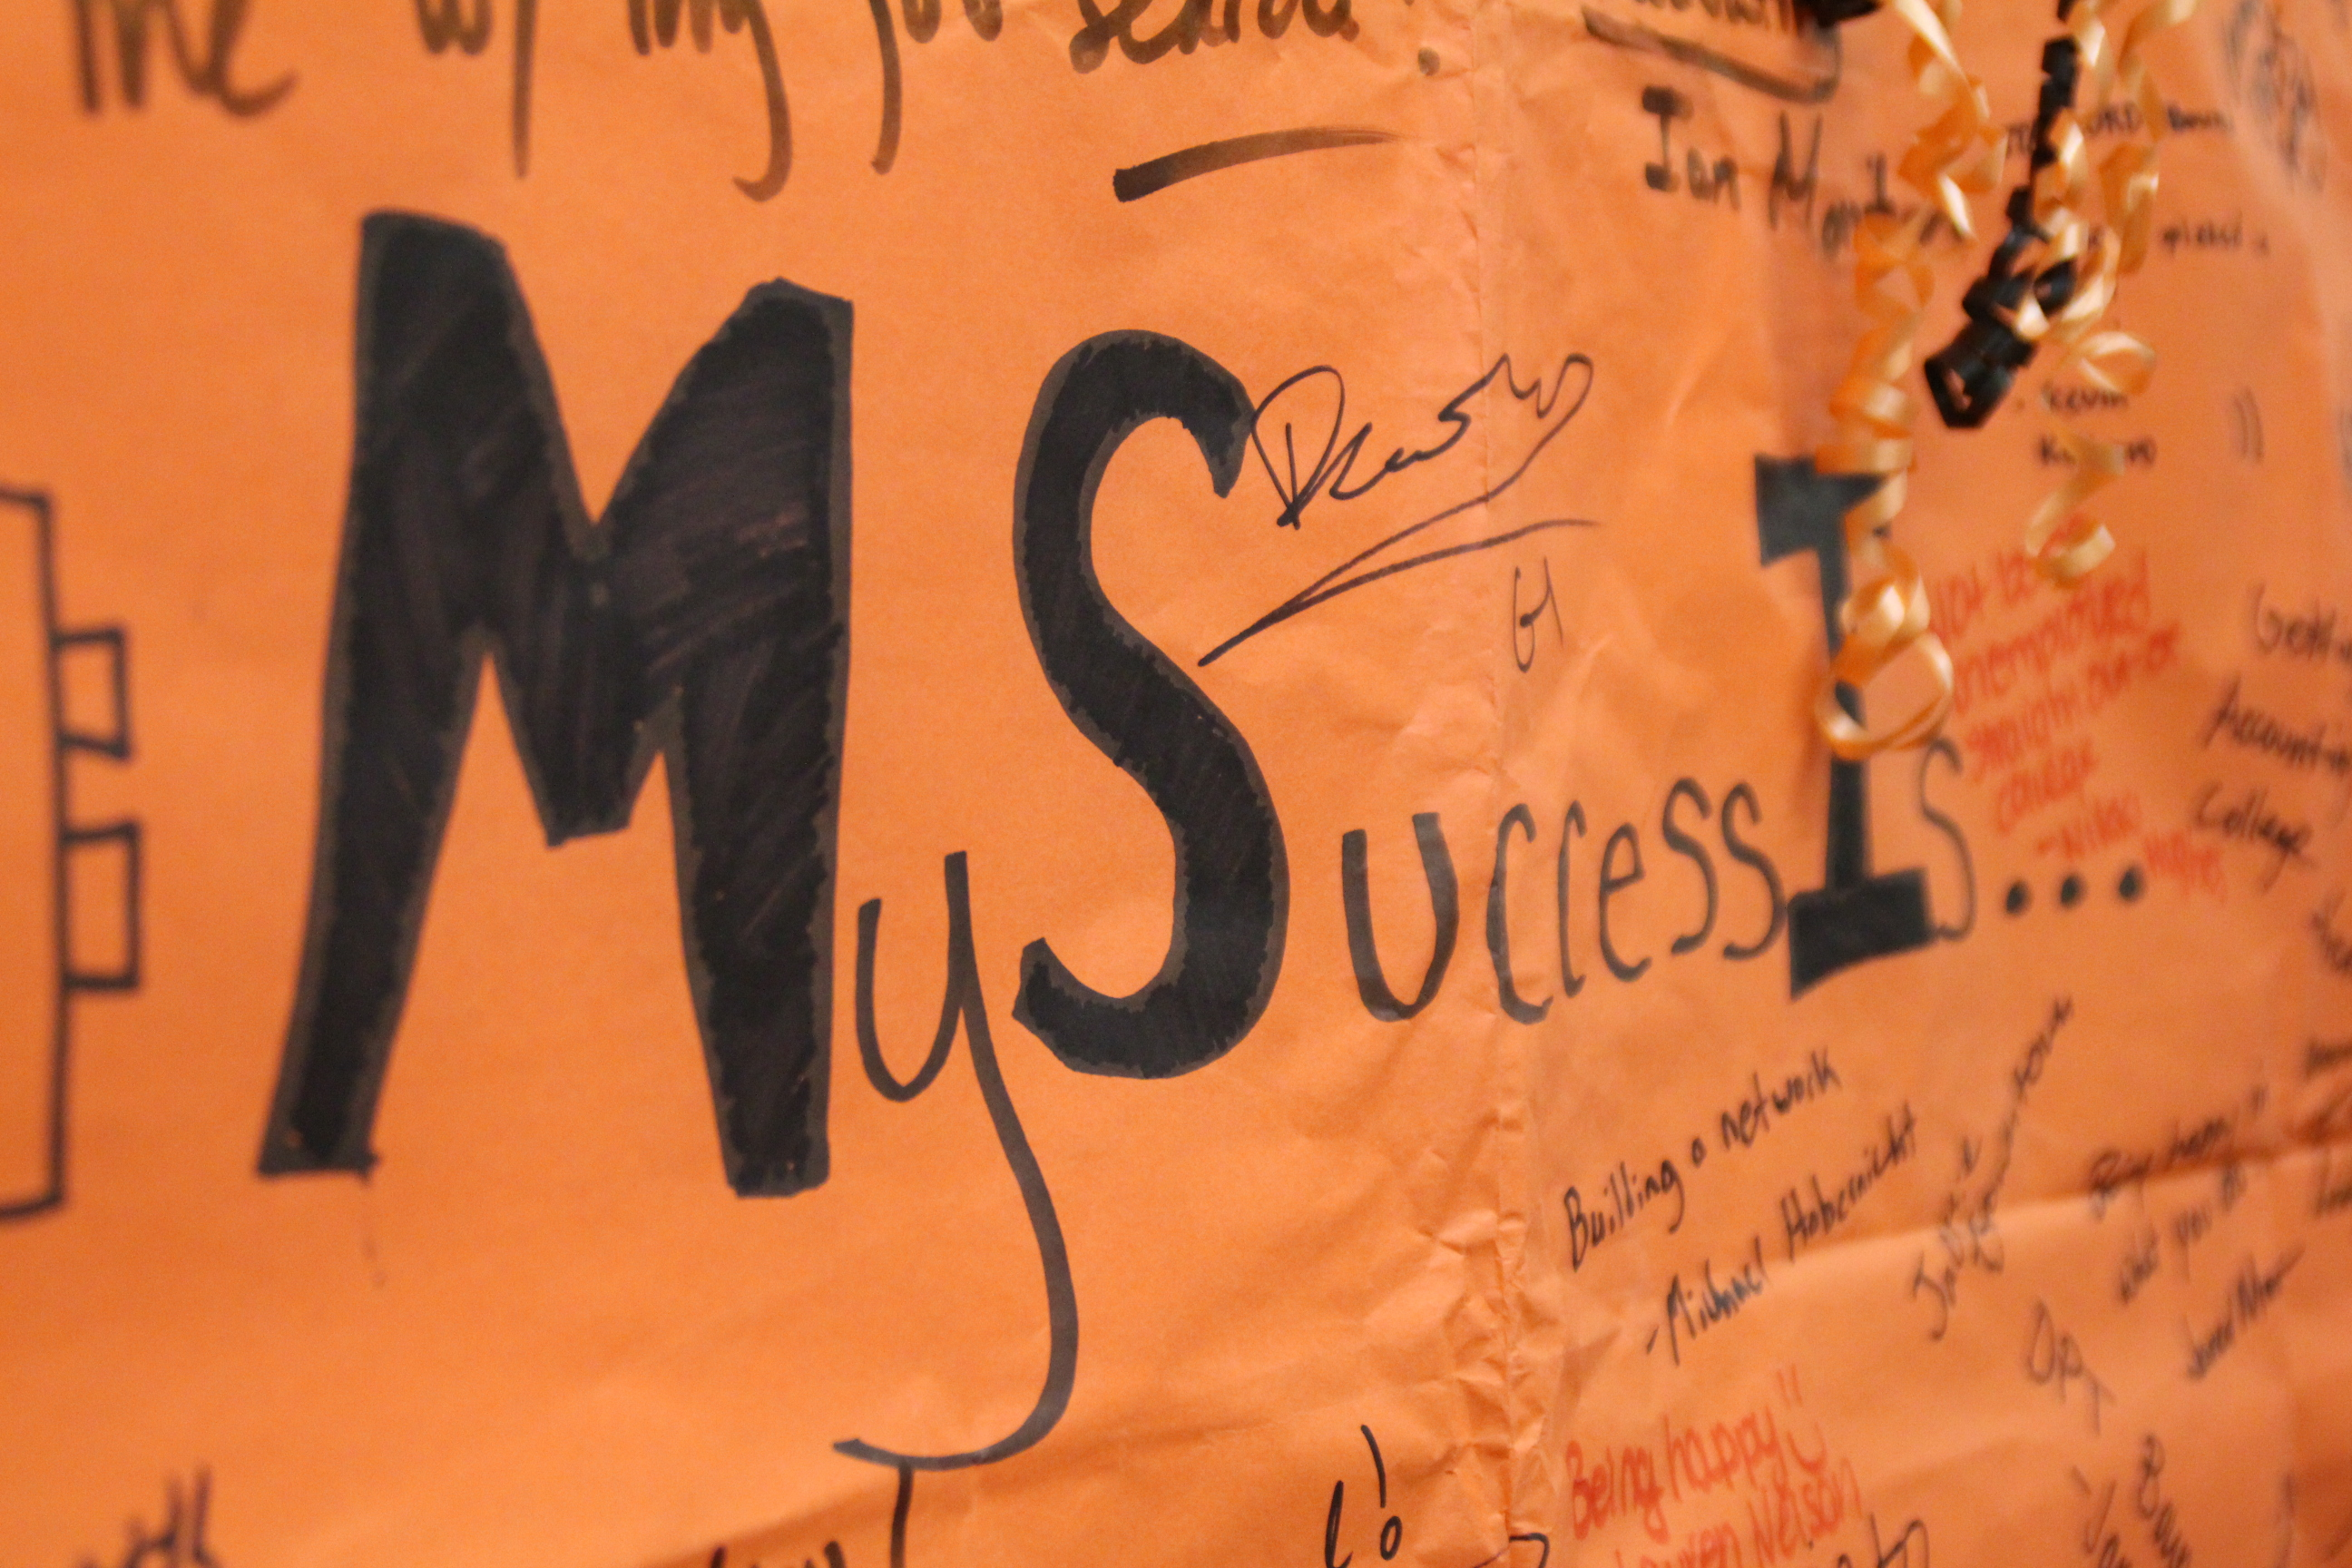 oregon state career success center asks what does success mean to you my success is butcher paper